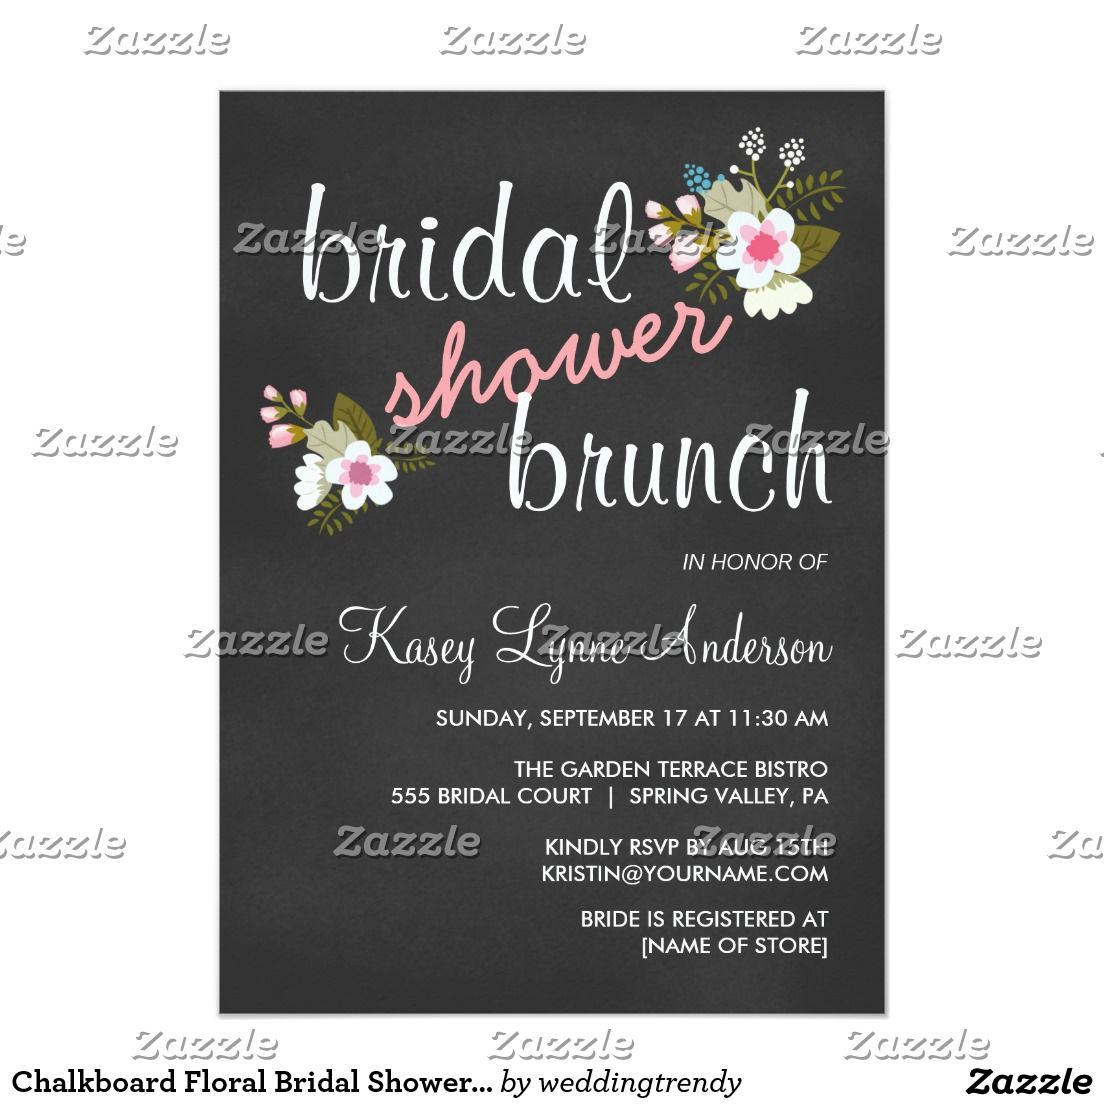 Chalkboard Floral Bridal Shower Brunch Invites  Chalkboard Bridal